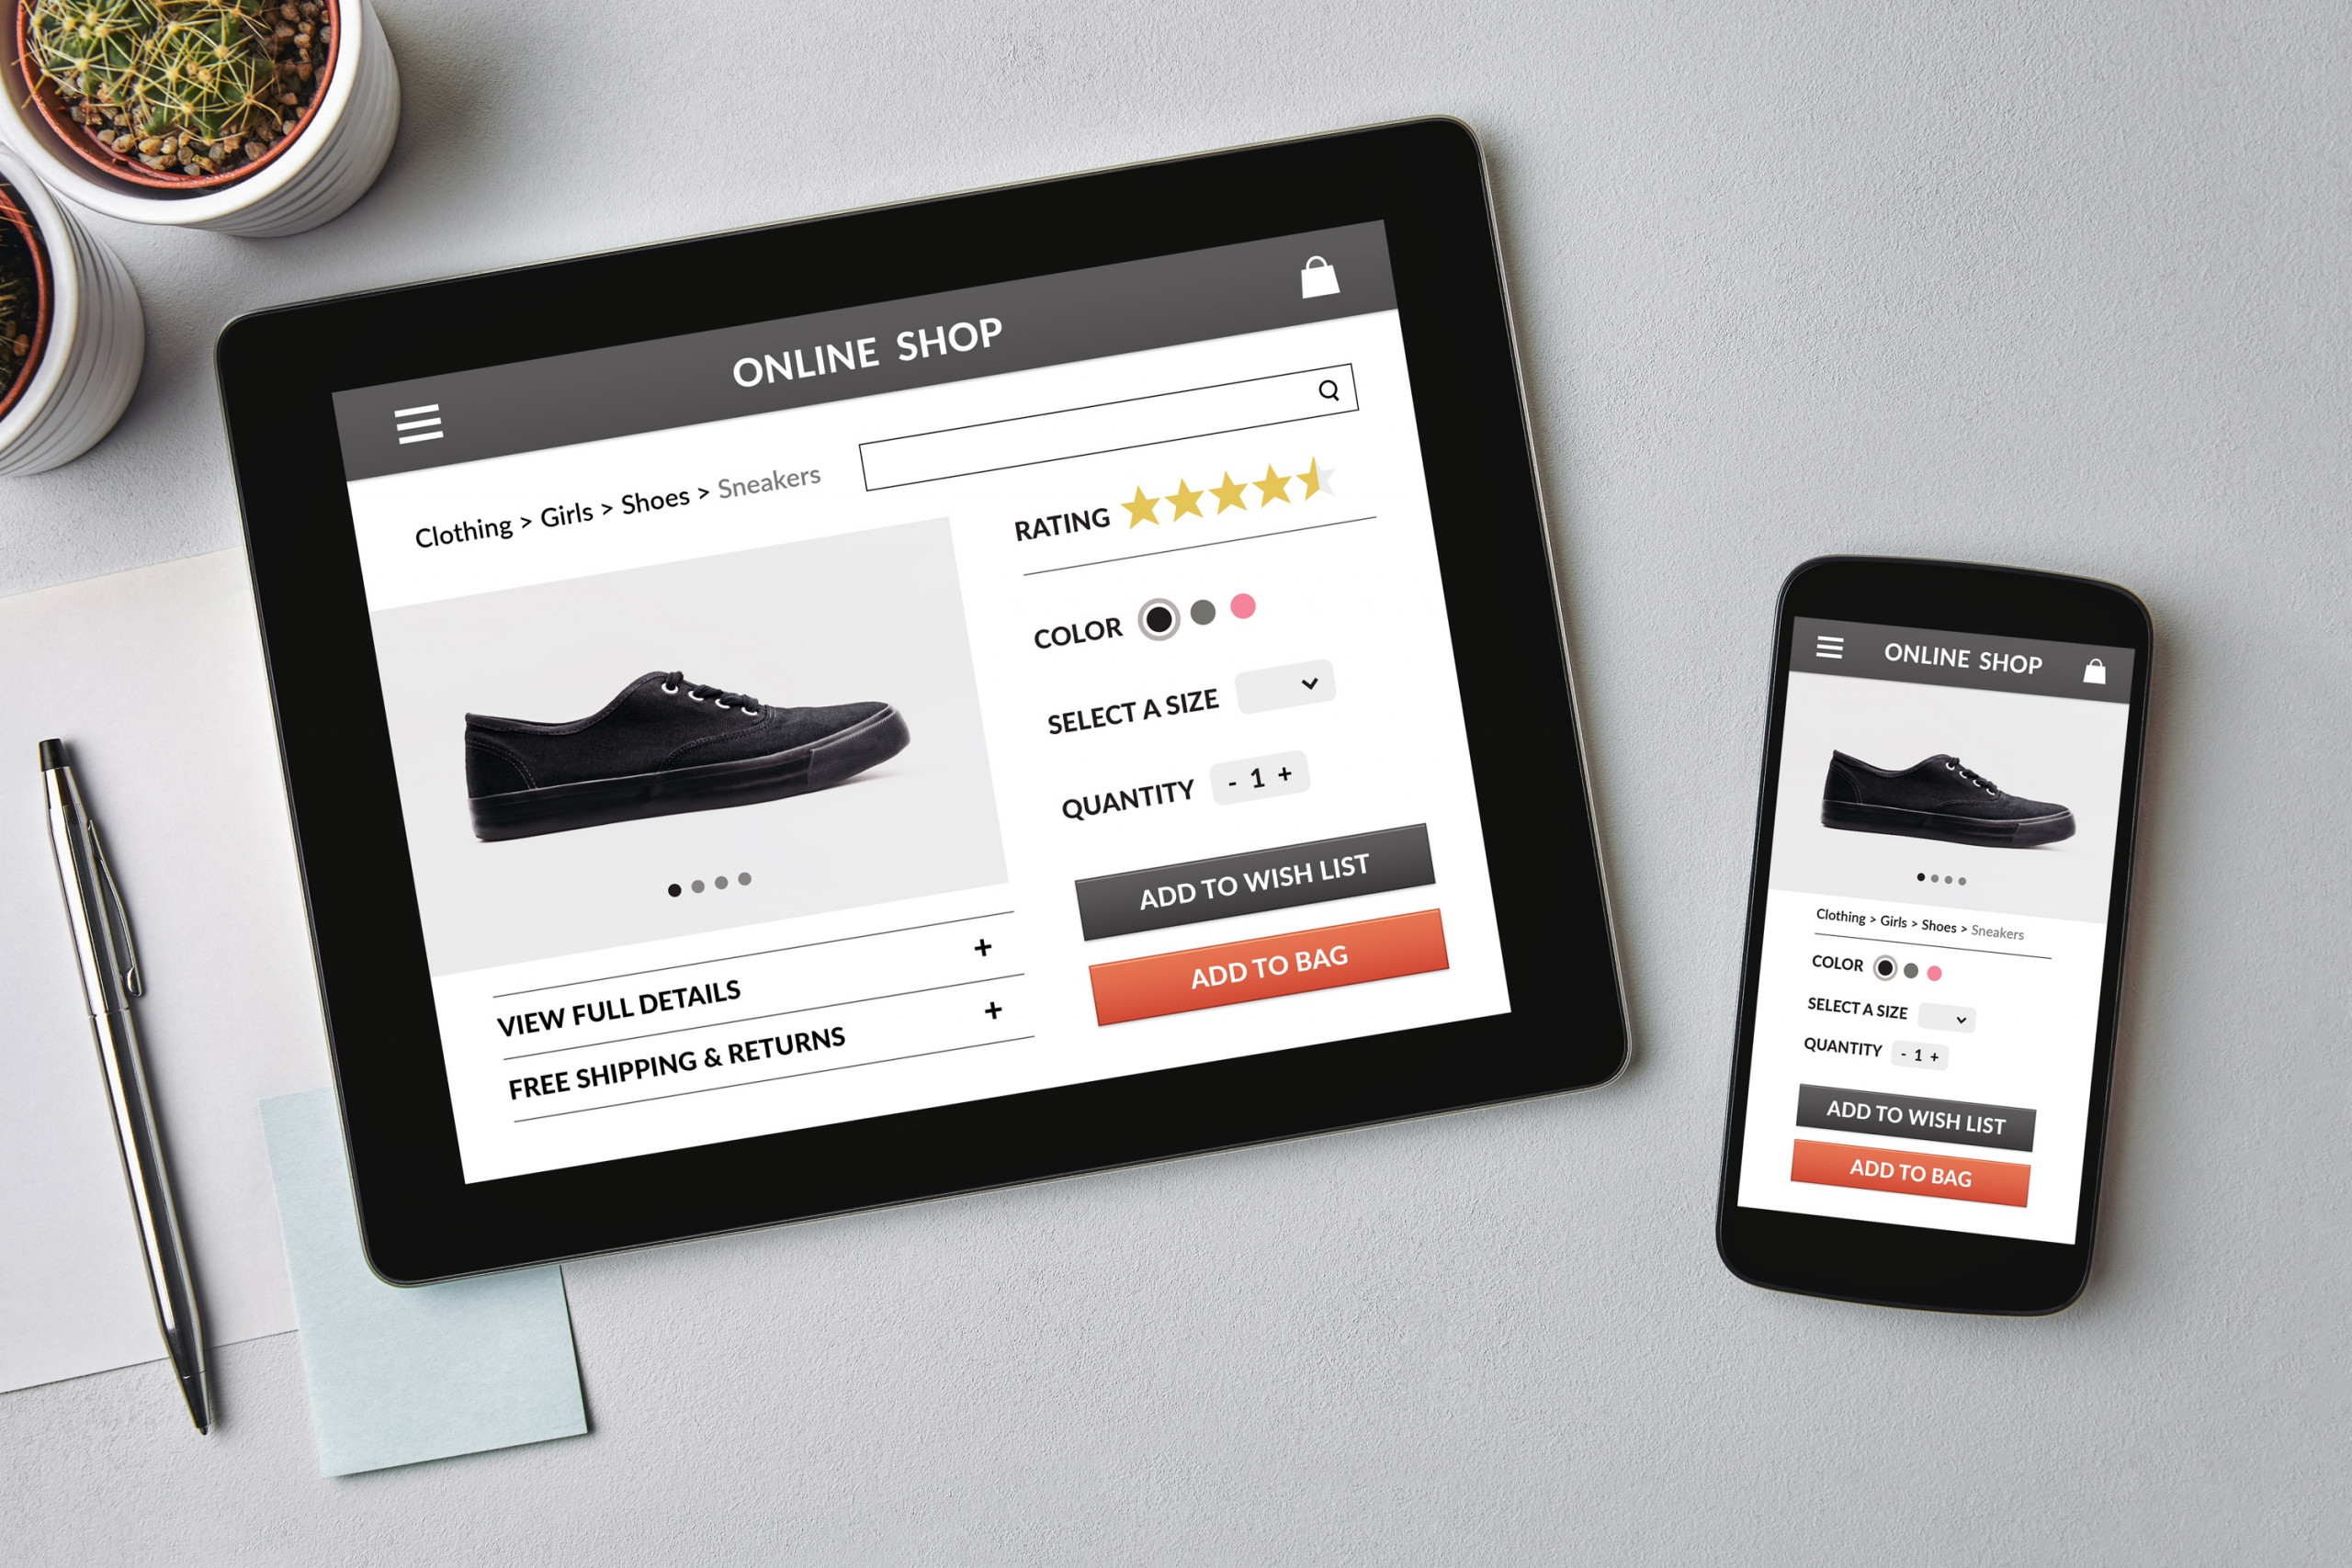 eCommerce solutions that are powerful and easy to use